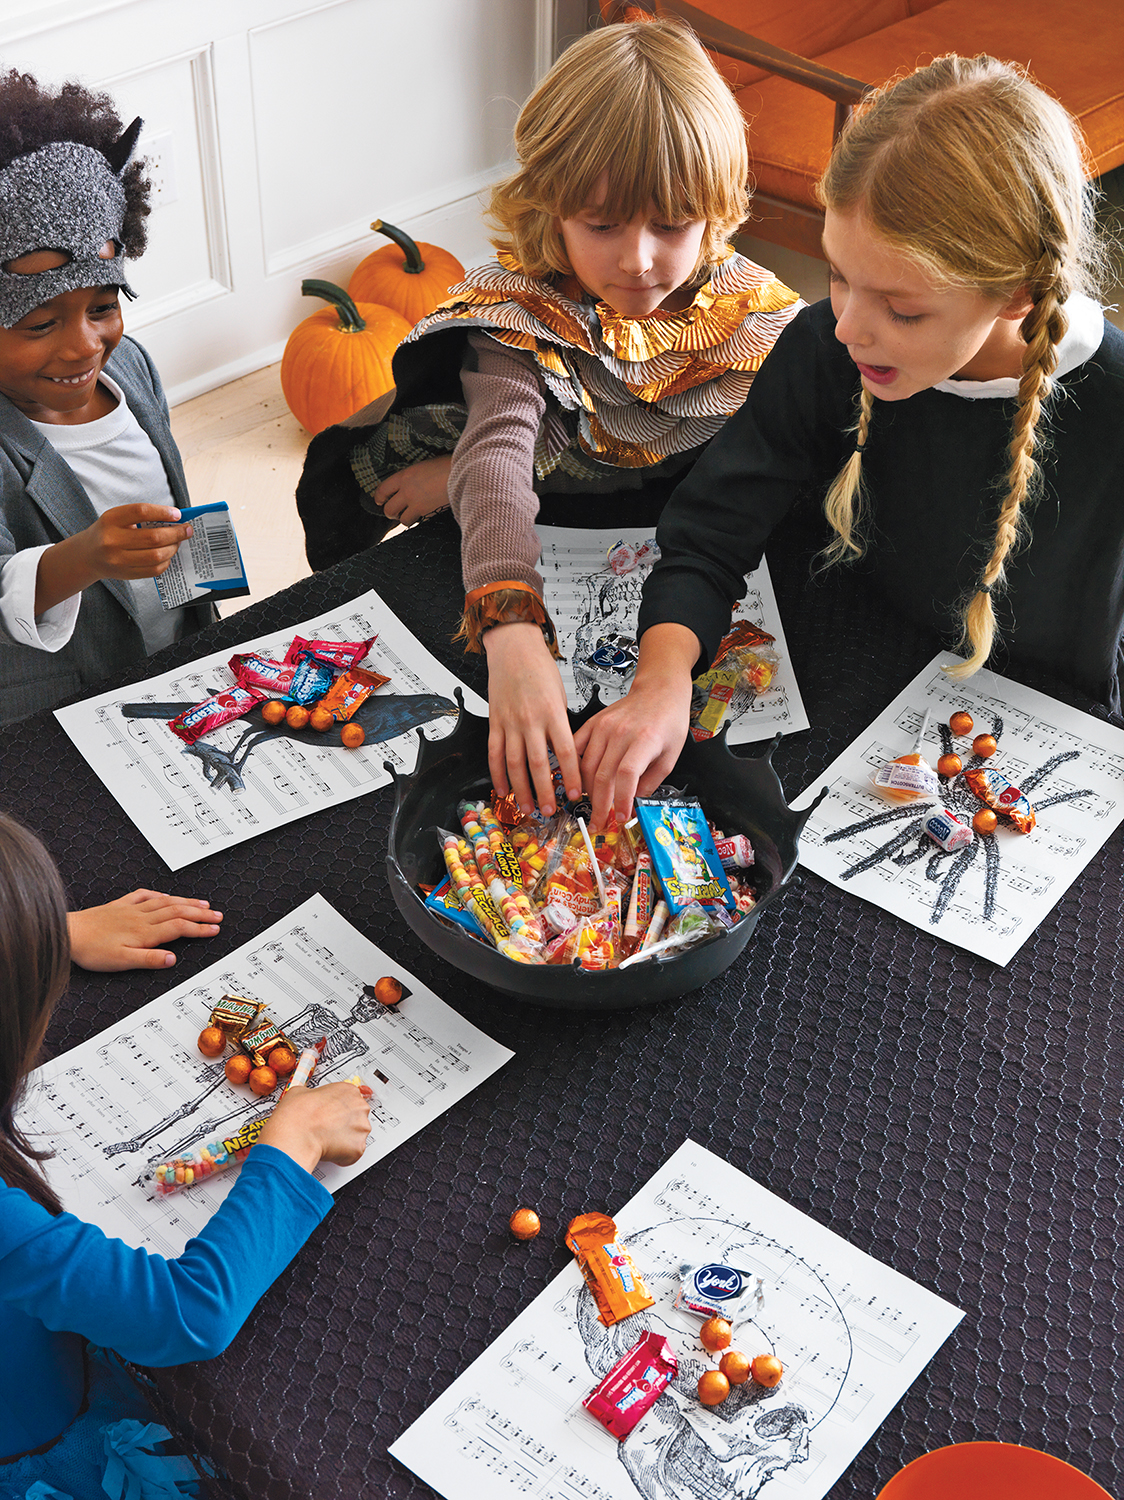 Children reaching into a bowl of candy at a Halloween party